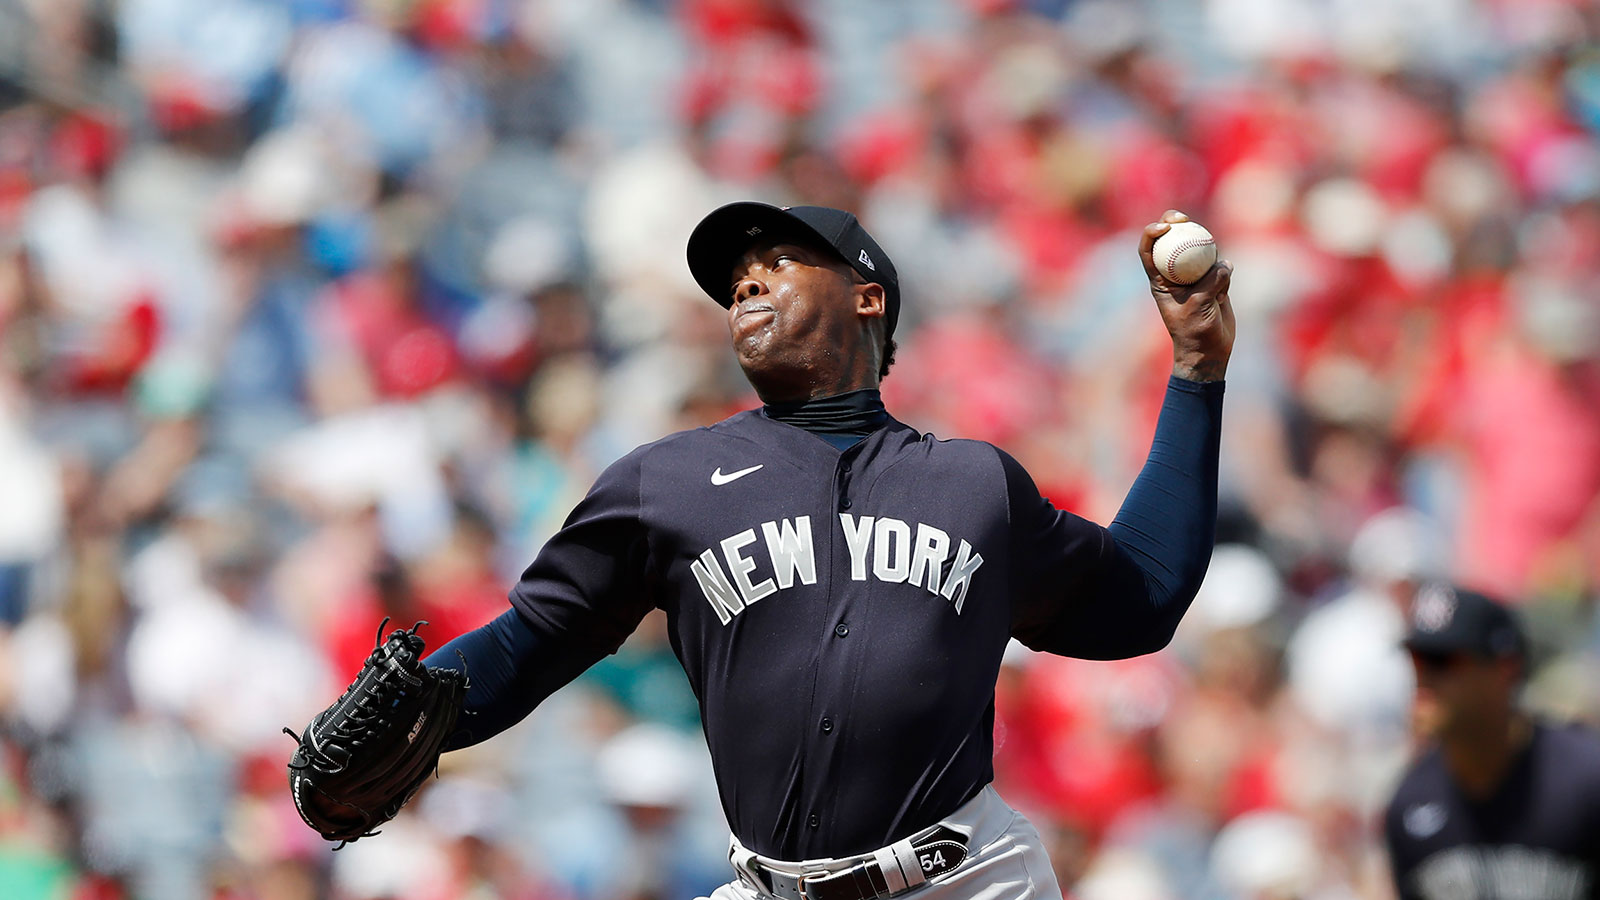 New York Yankees pitcher Aroldis Chapman throws during a spring training game in March.